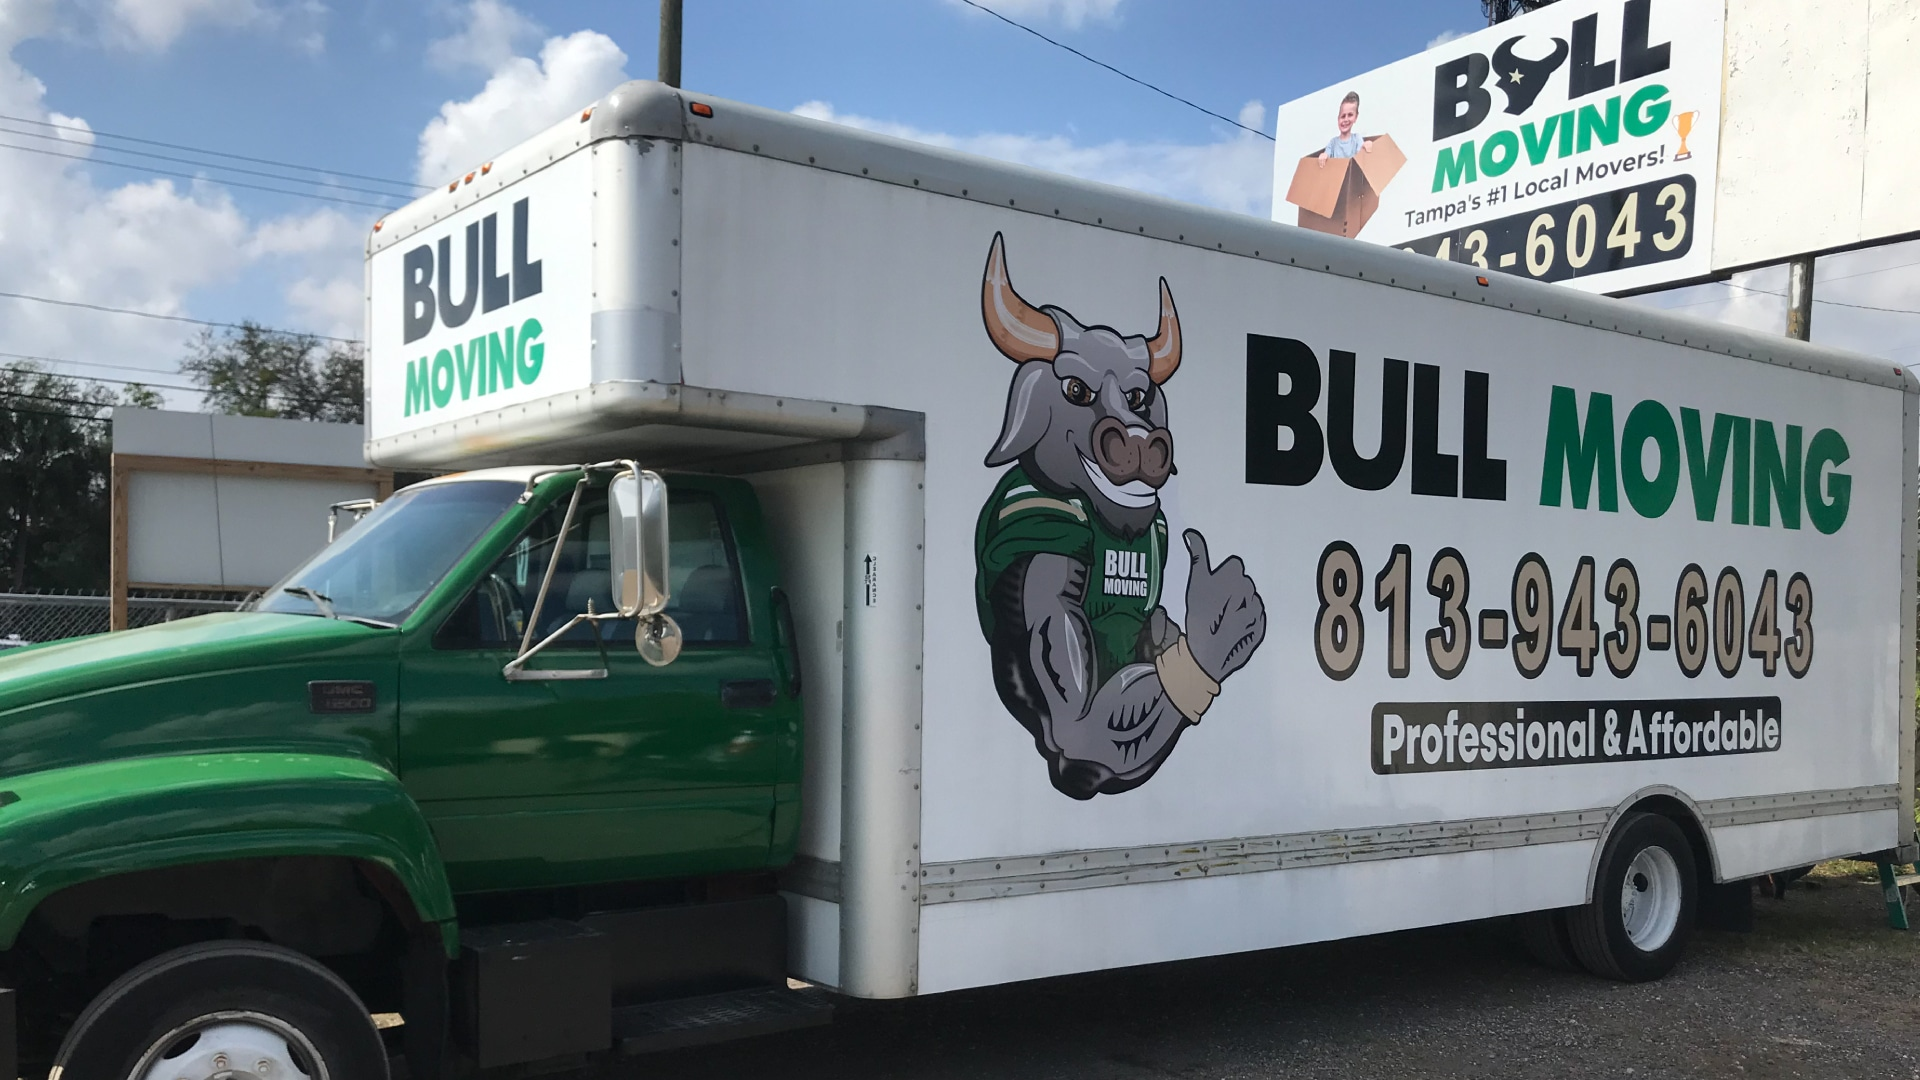 Bull Moving Box Truck